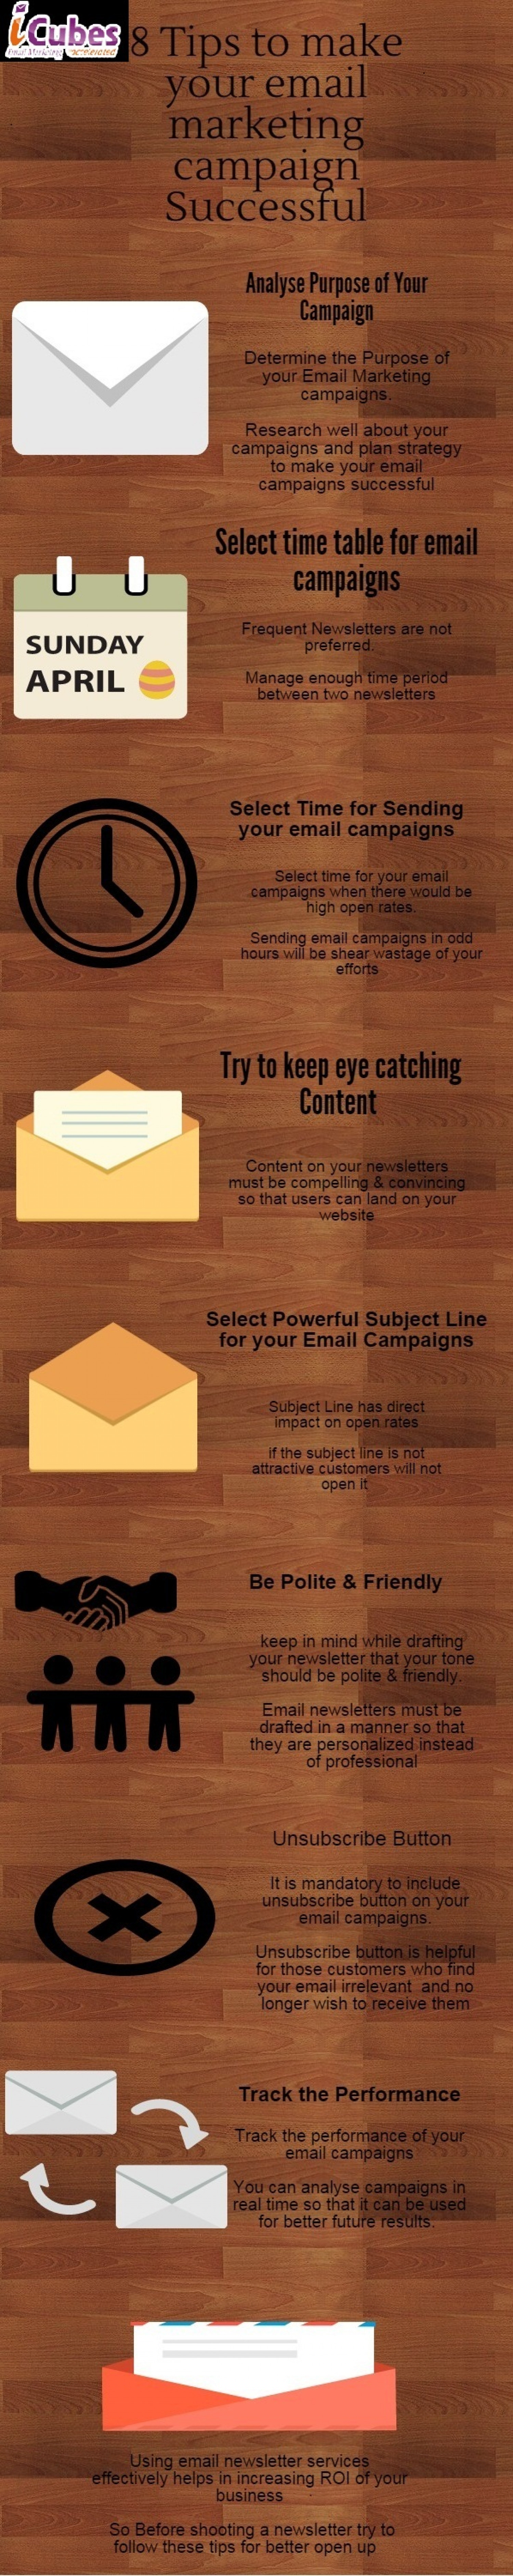 8 Tips to Make your Email Marketing Campaign Successful Infographic